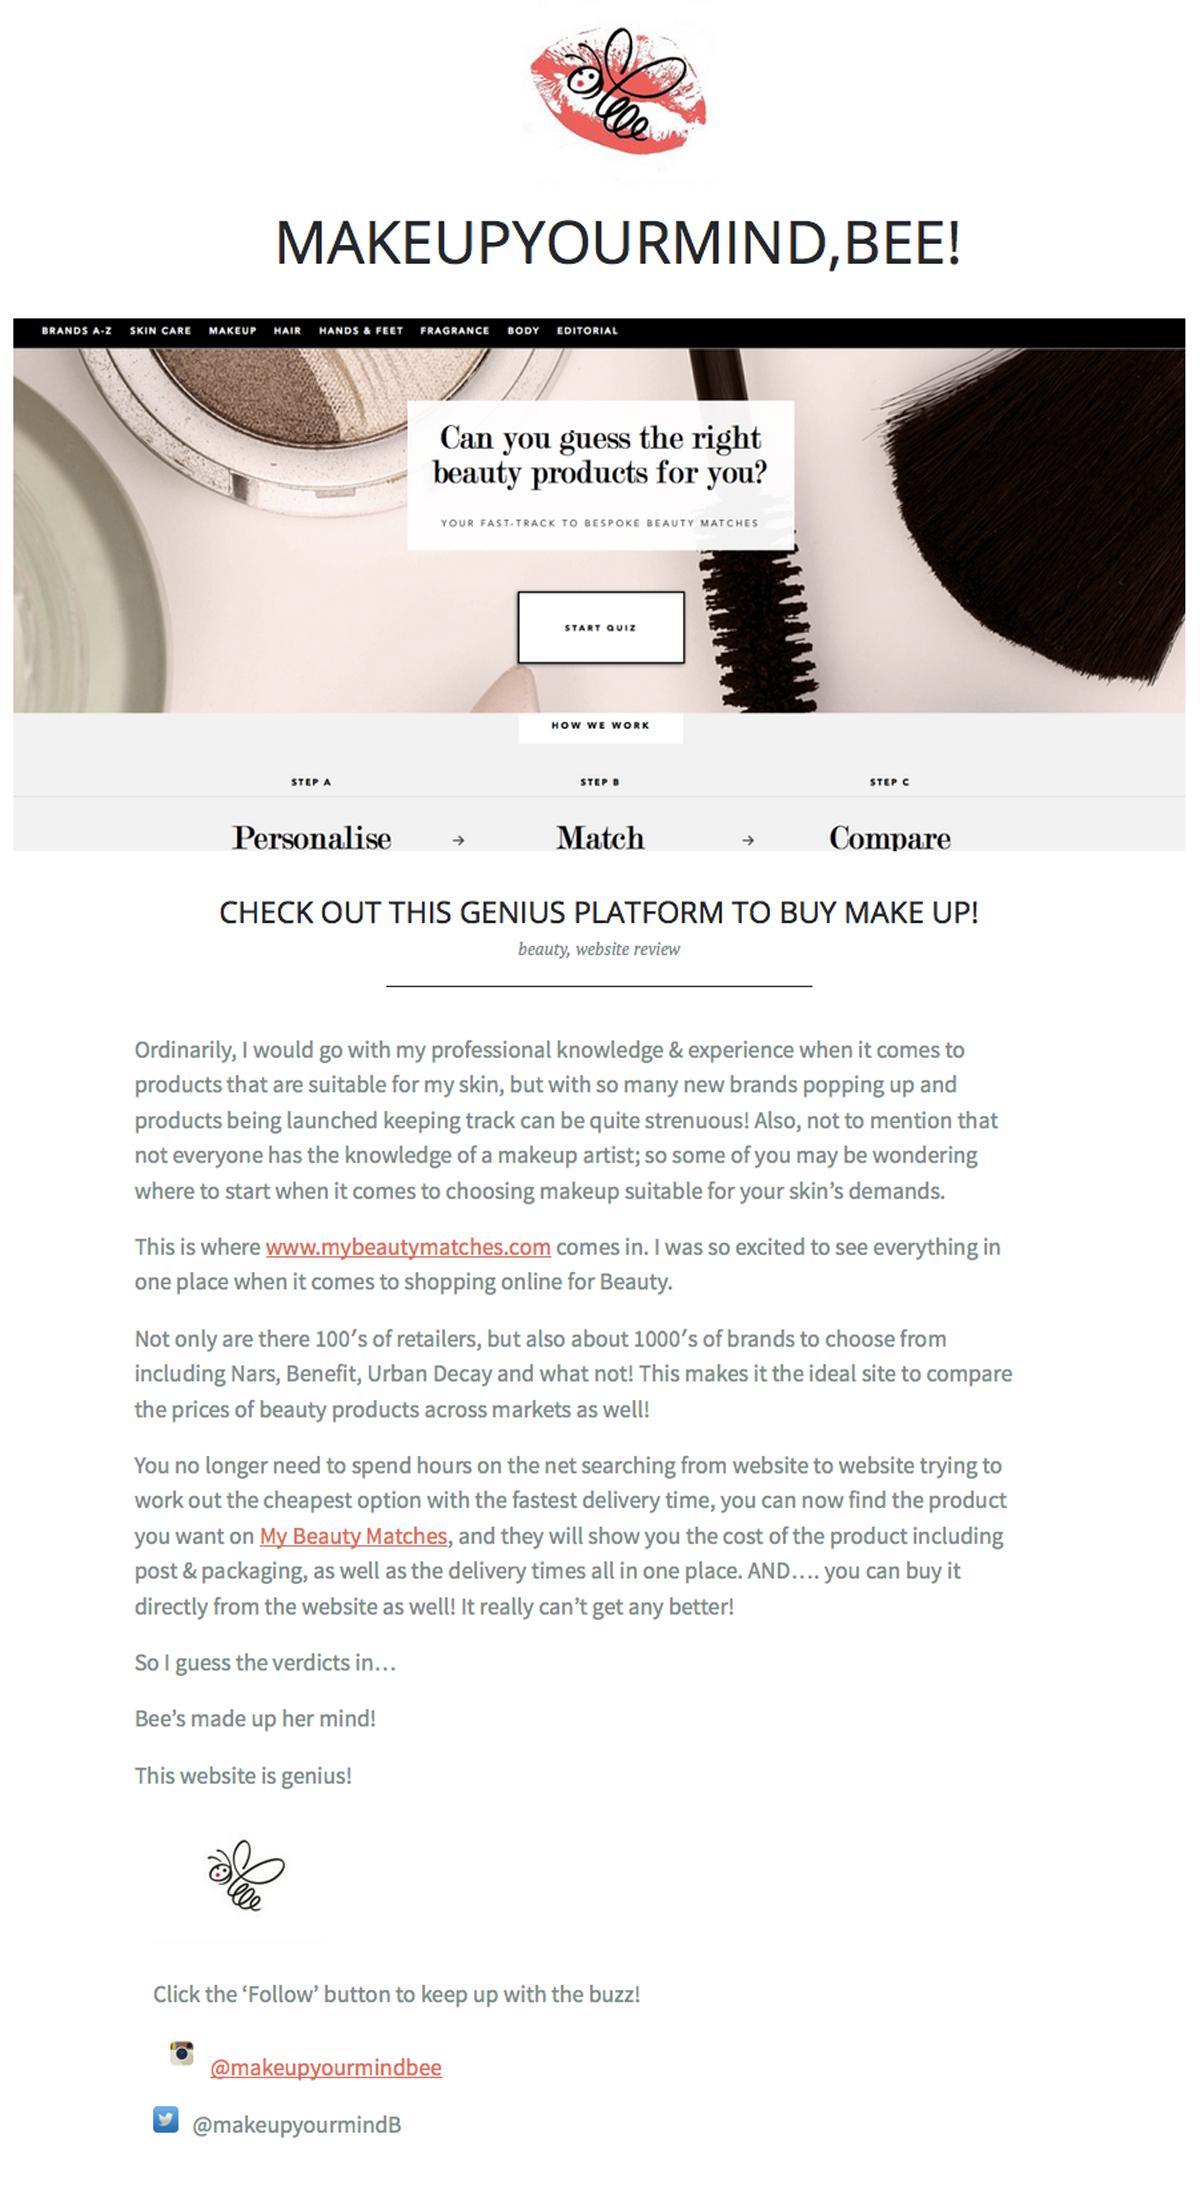 Check out this genius platform to buy make up! Clipping